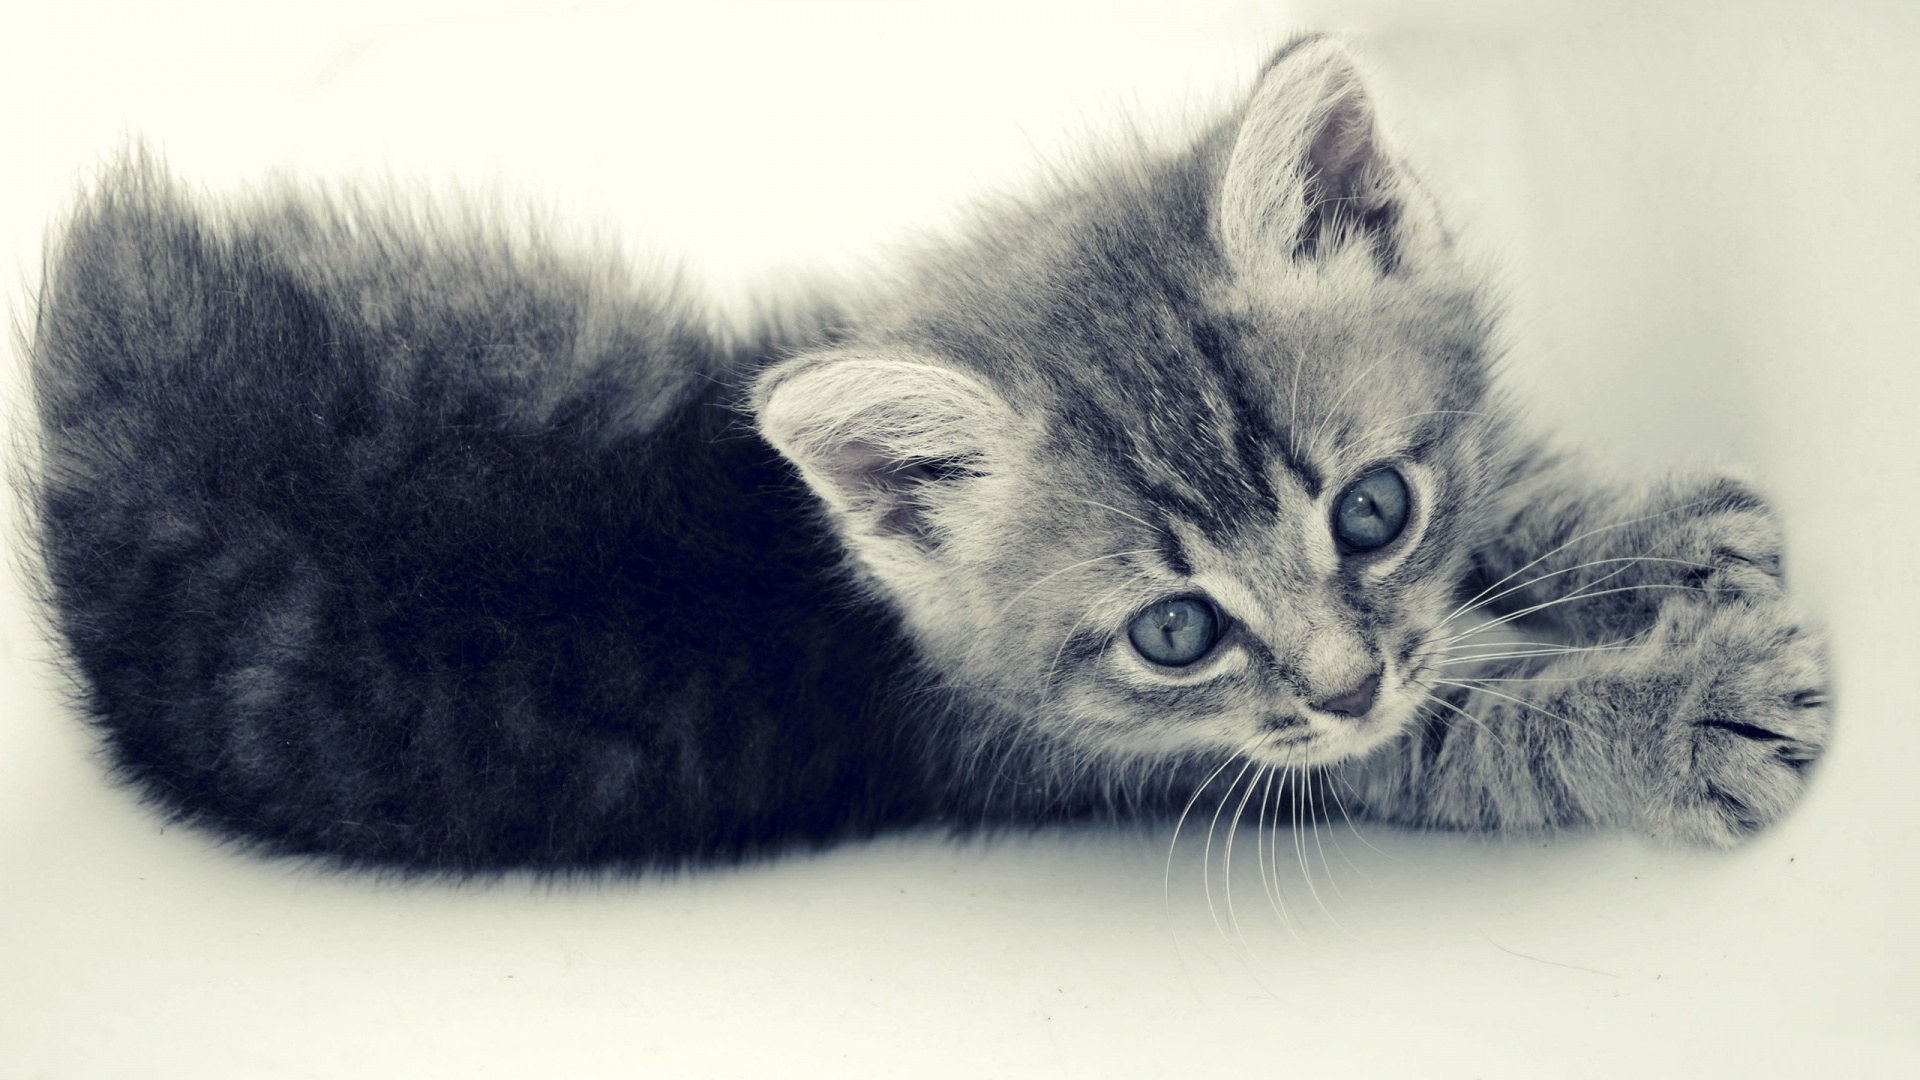 Cute Cats Wallpaper 20 Photos funmagorg